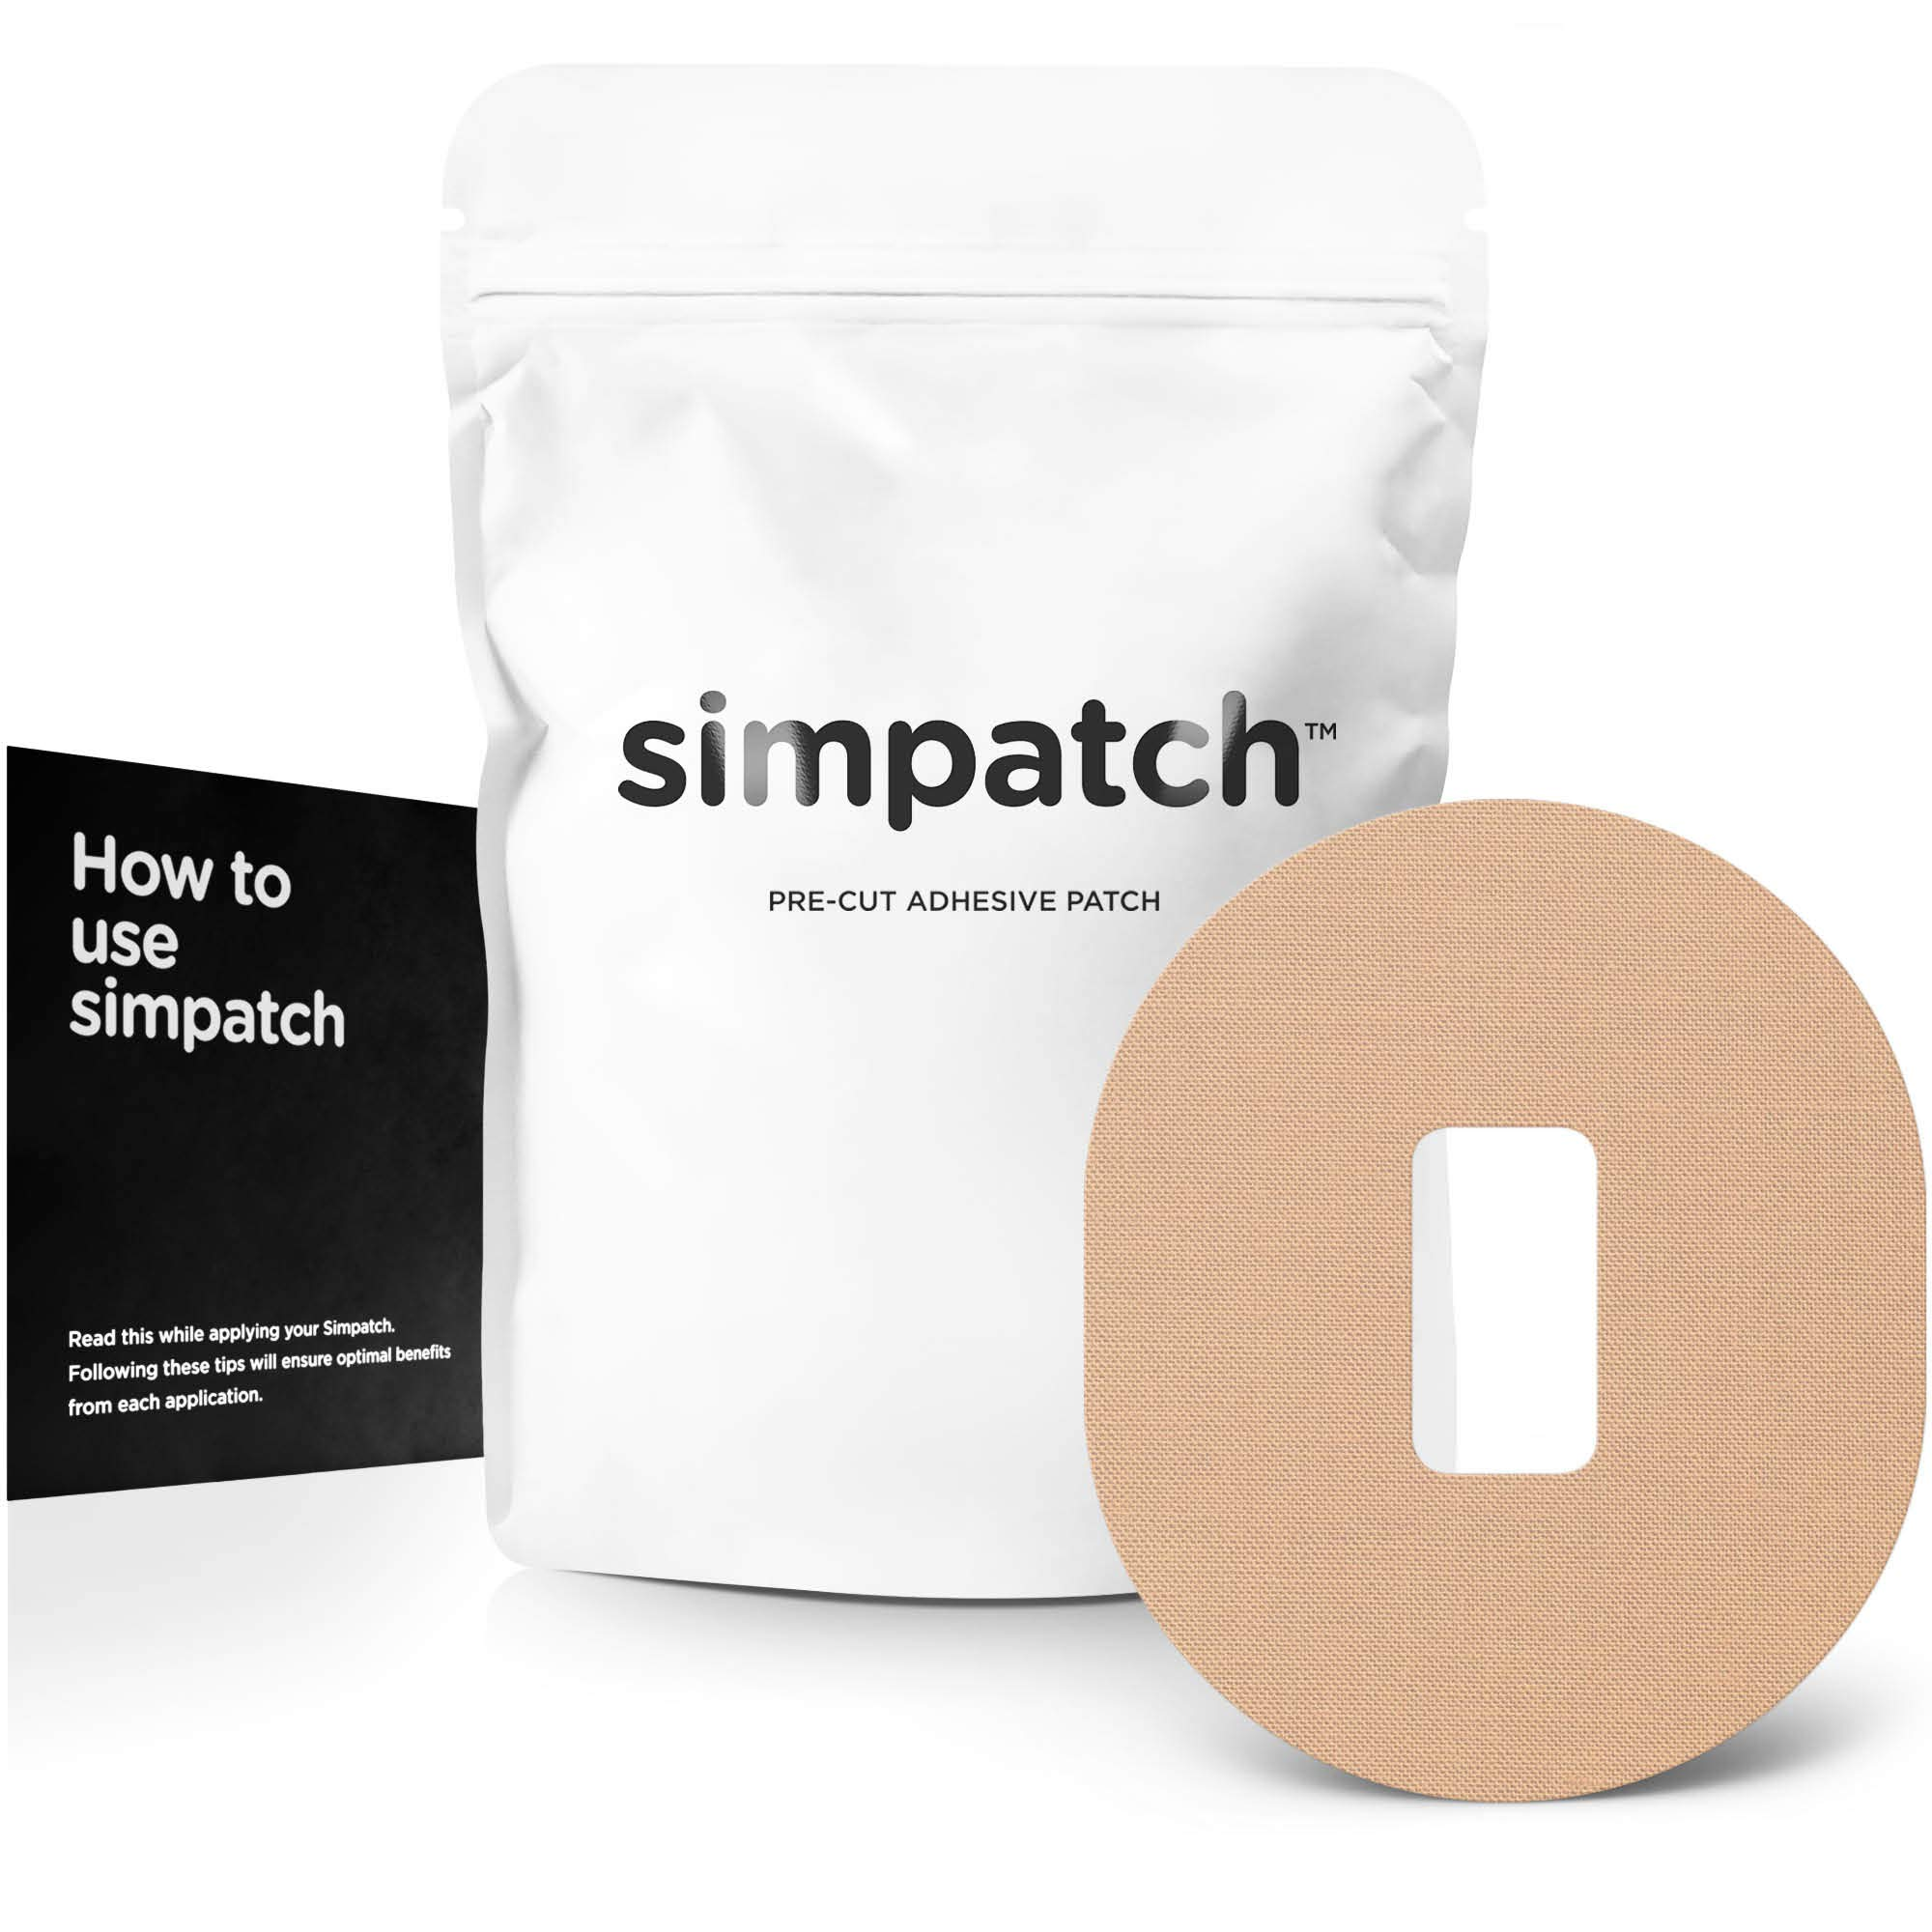 SIMPATCH Adhesive Patch for Dexcom - Pack of 25 - Multiple Colors Available (Beige) by SIMPATCH